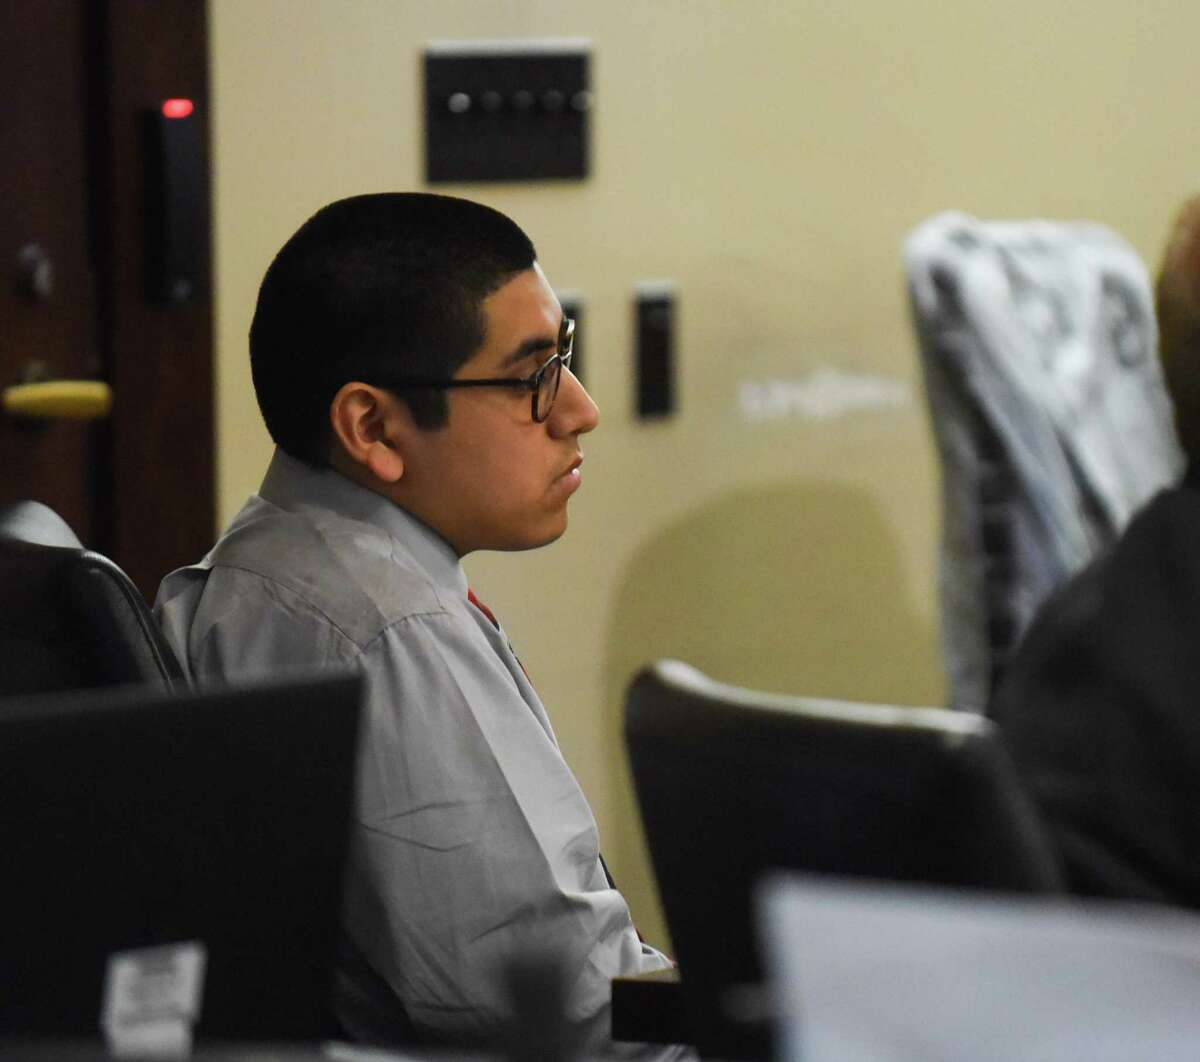 Jonathan Perales, who is accused of the capital murder death of ?Michael Clayton? Robinson, who was a physician's assistant in Universal City, sits in the courtroom of Judge Melisa Skinner on Tuesday, Oct. 9, 2018.